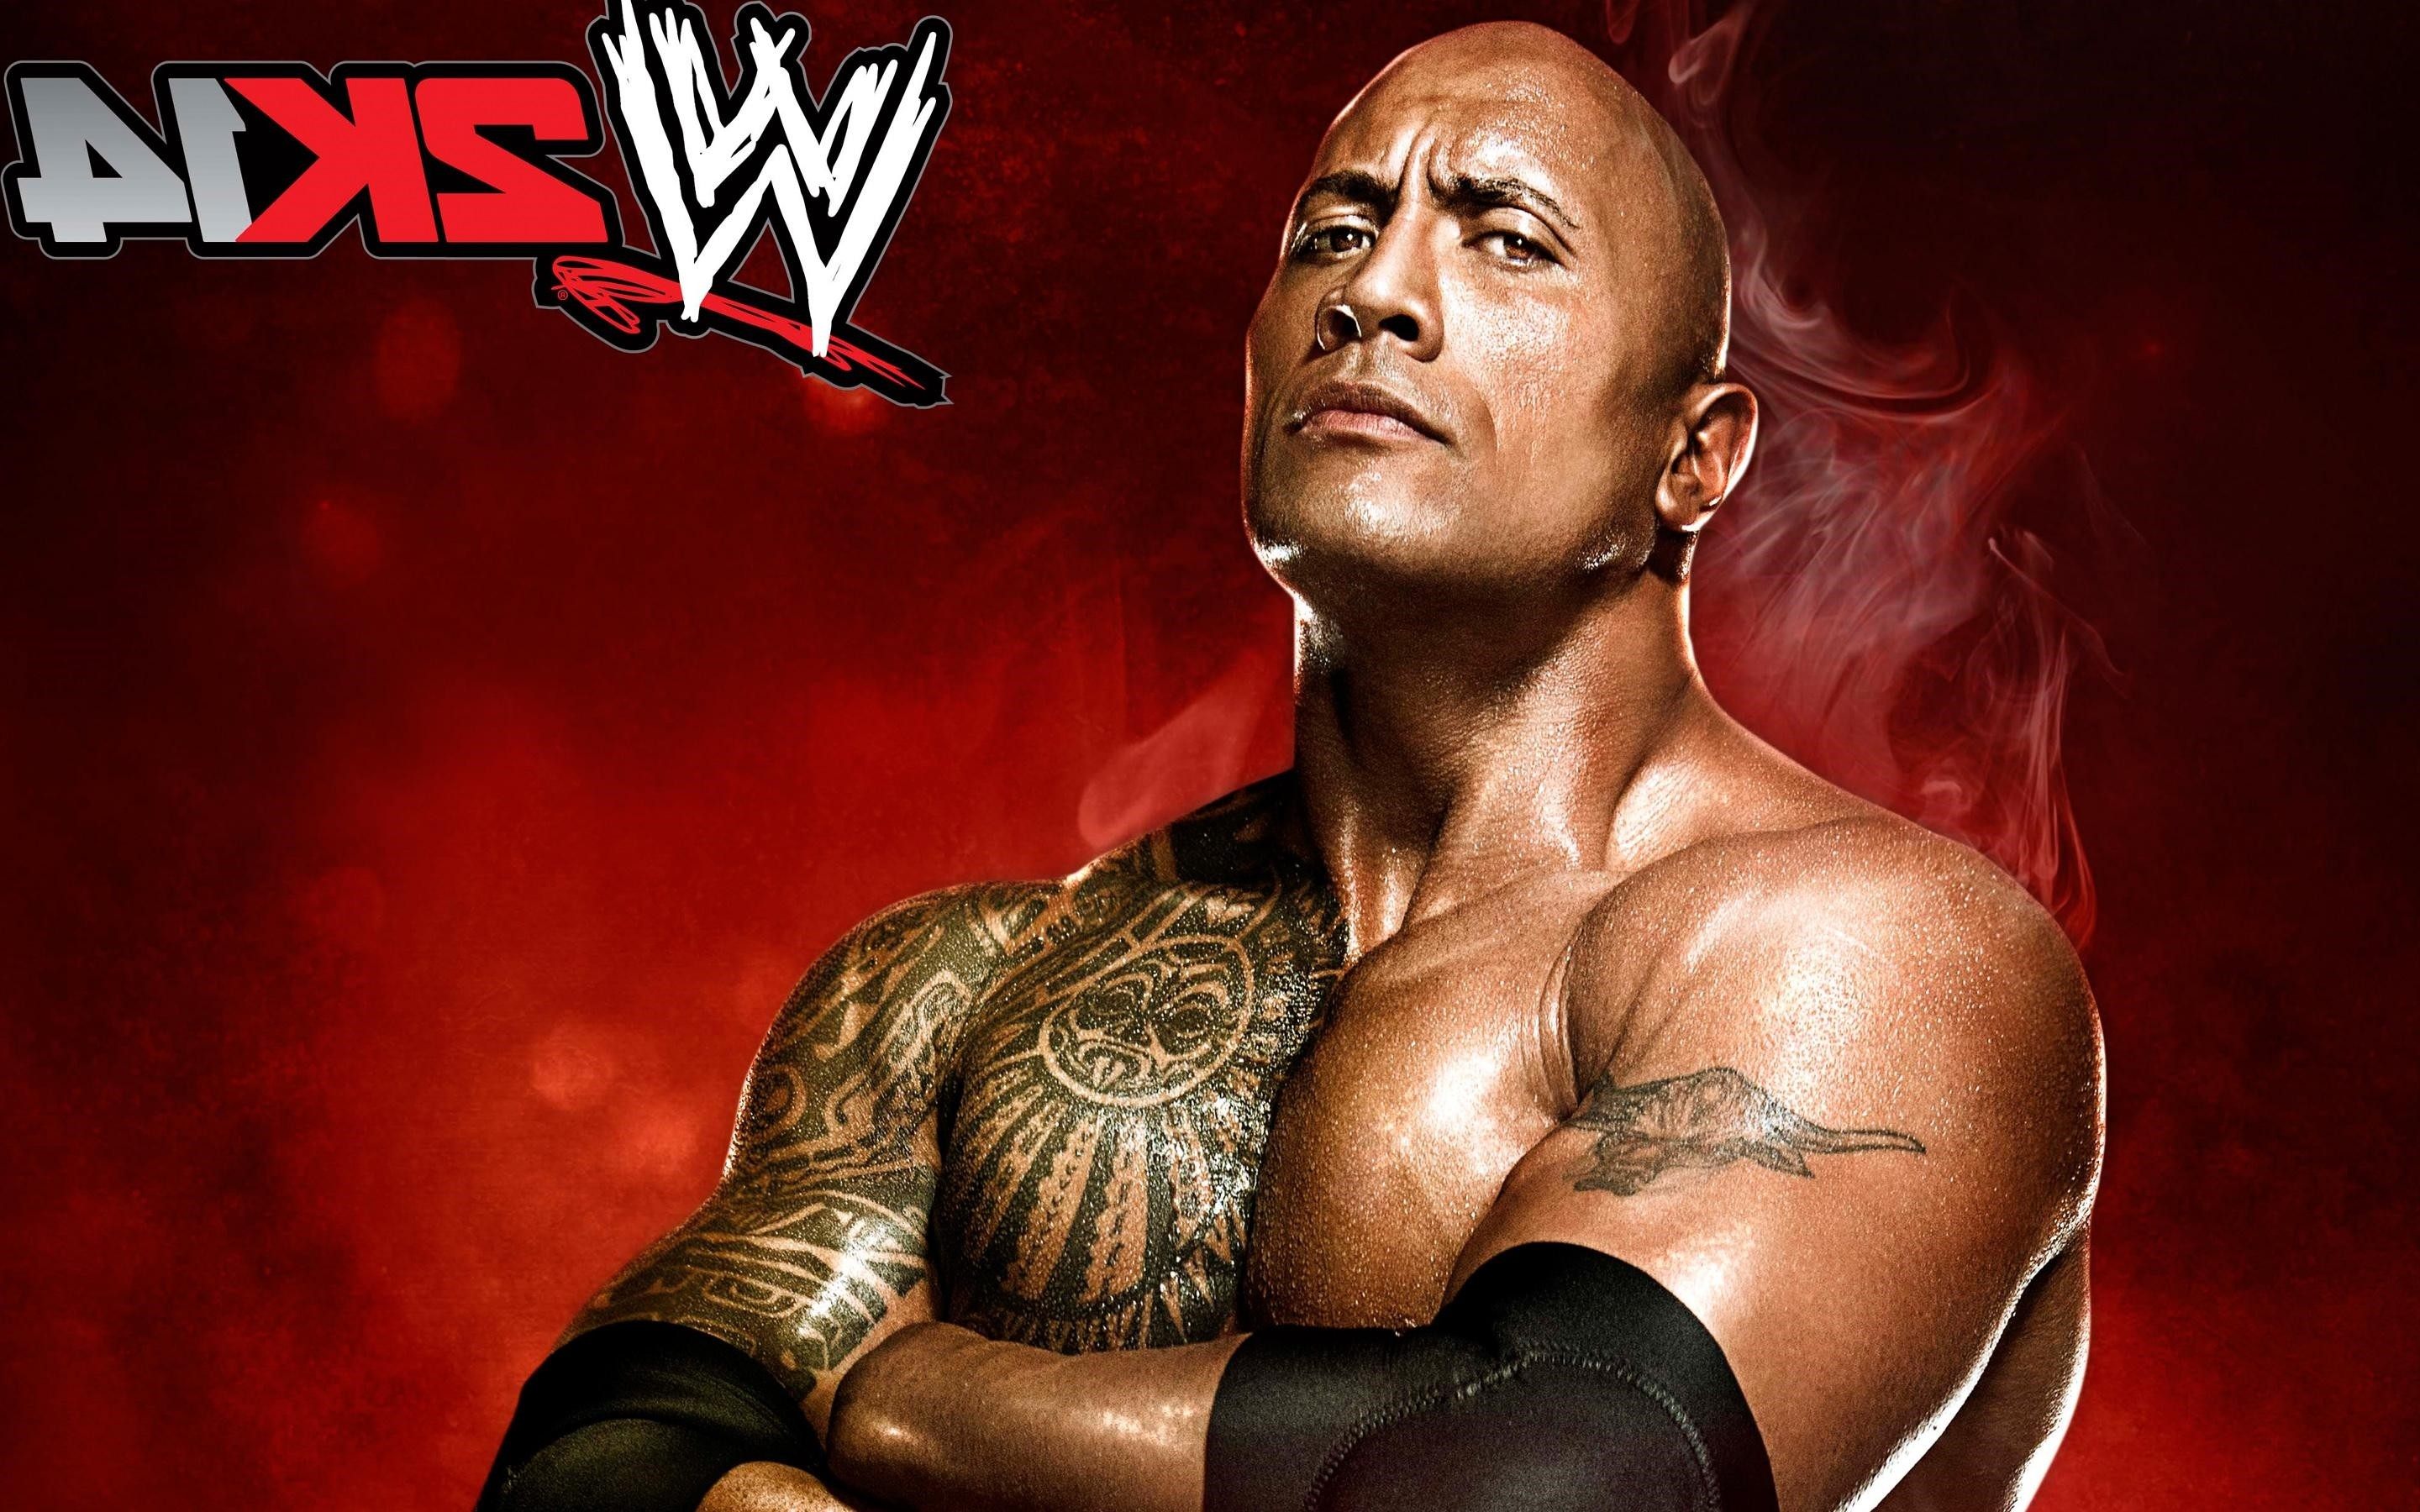 2880x1800 Wwe 2k14 2014 Video Games The Rock Hd Wallpaper